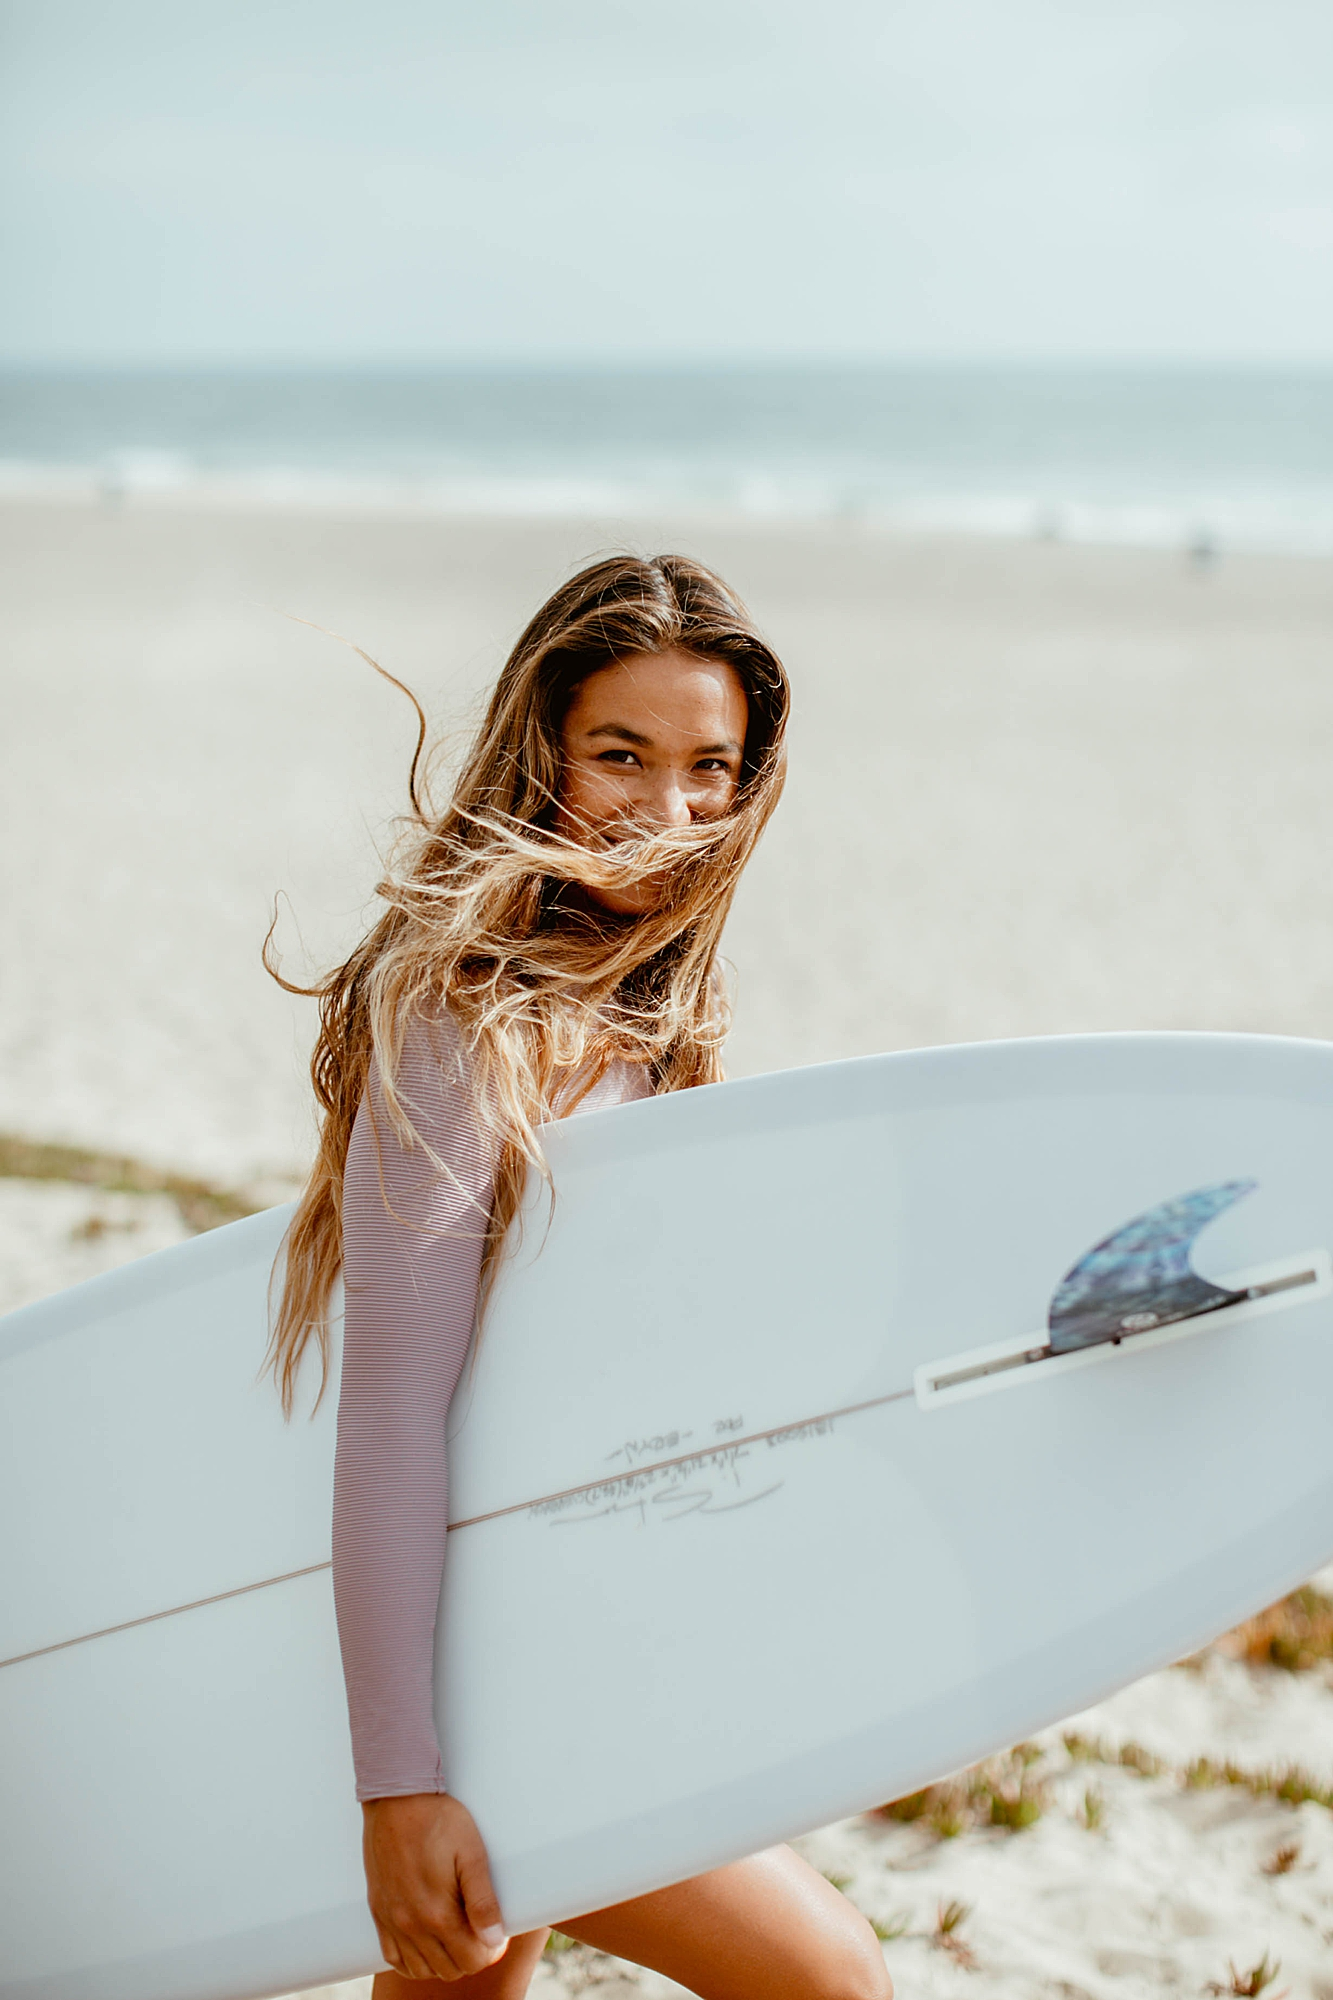 Southern California Surf and Lifestyle Fashion Photographer Kelee Bovelle @keleeb X Eryn Krouse @erynkrouse_0003.jpg